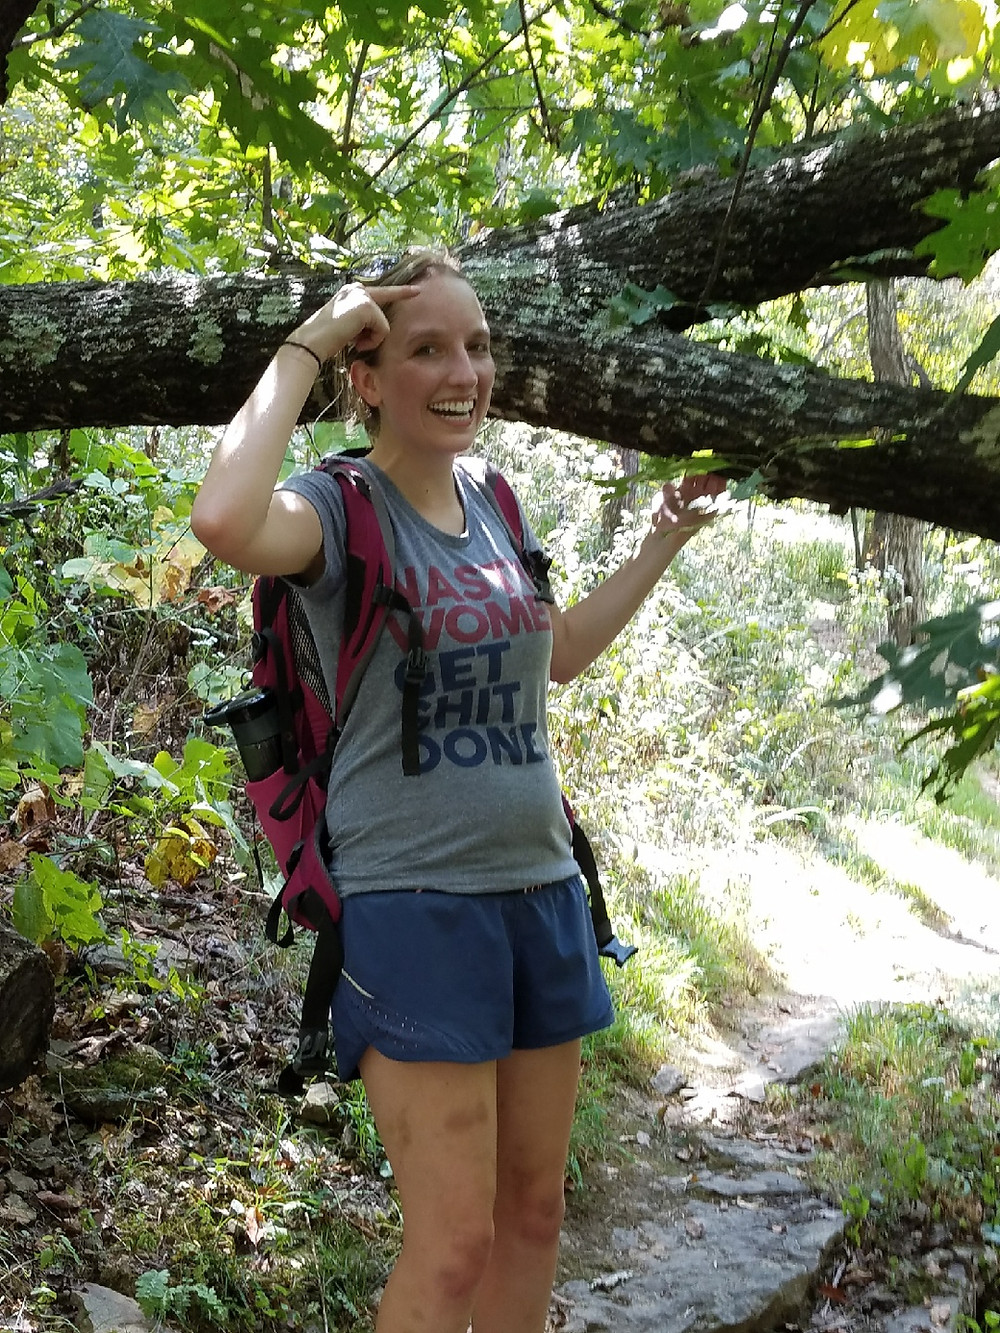 Shannon poses in front of a large tree branch next to her. She is smiling and pointing at her head. She is dressed in hiking clothing - a t--shirt, shorts and a camelback backpack.